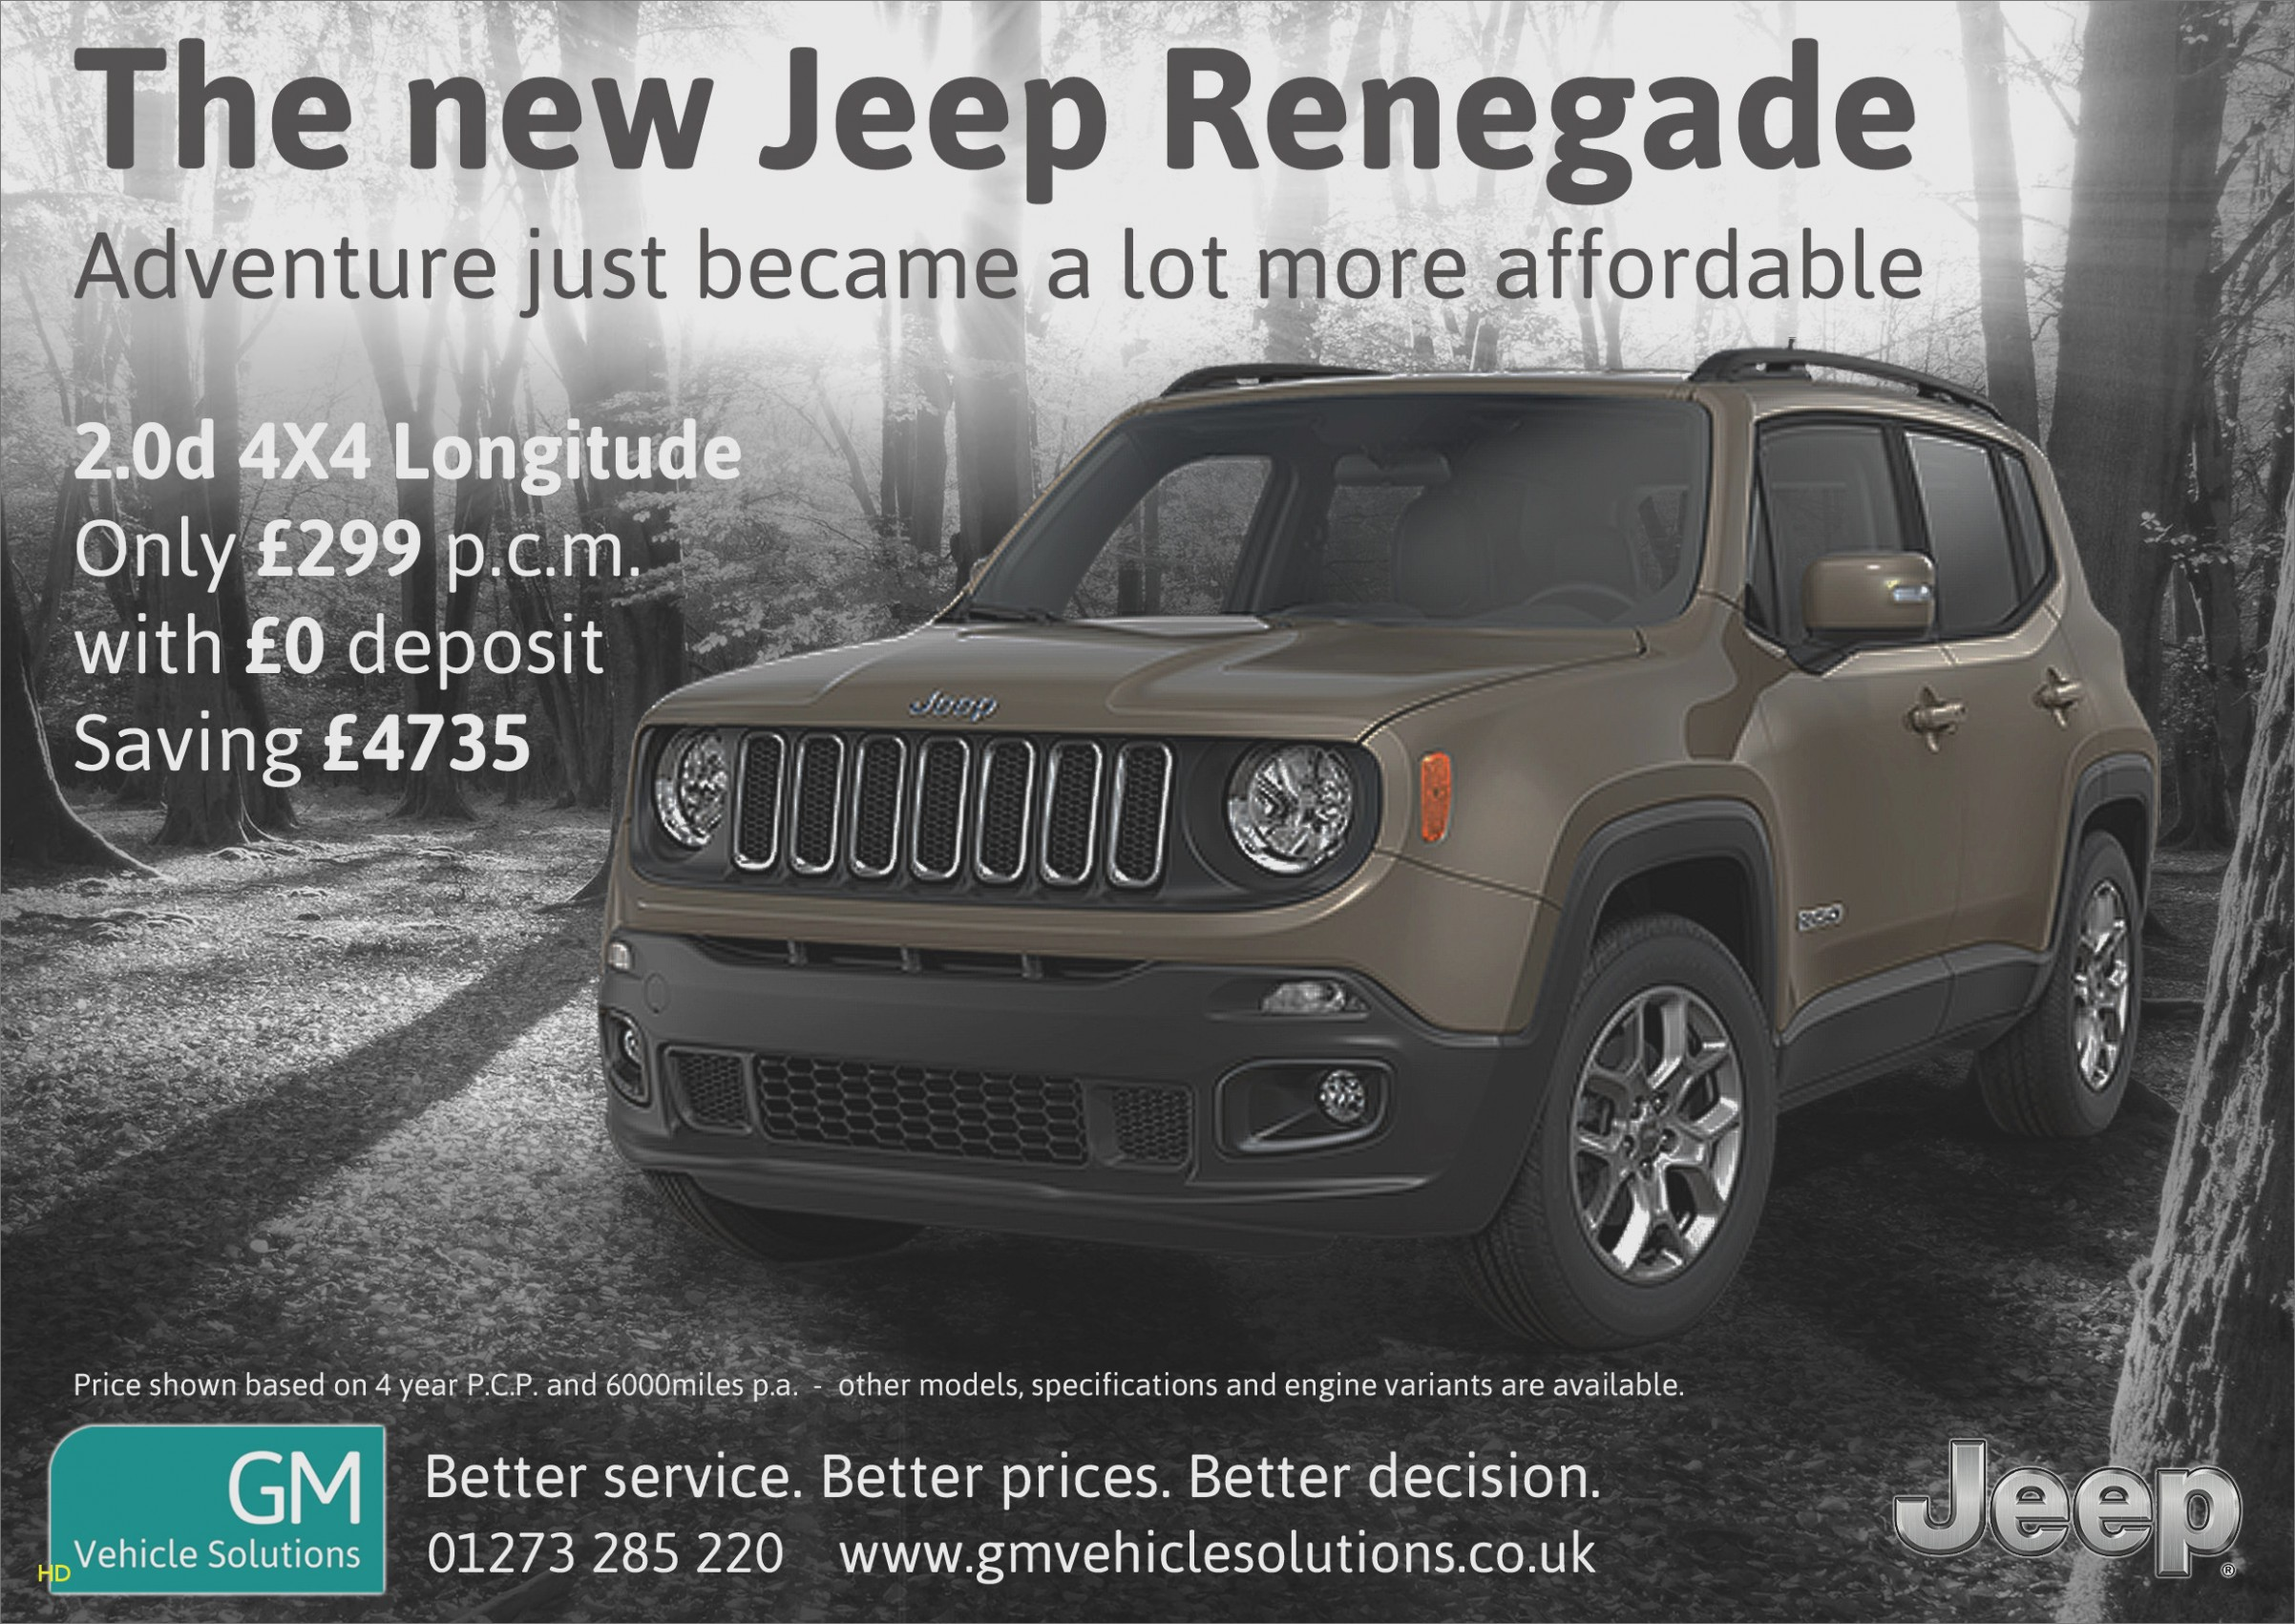 Jeep 4 0 Engine Diagram 2 Jeep Dealer Invoice 15 Jeep Wrangler Used Free Invoice Template Of Jeep 4 0 Engine Diagram 2